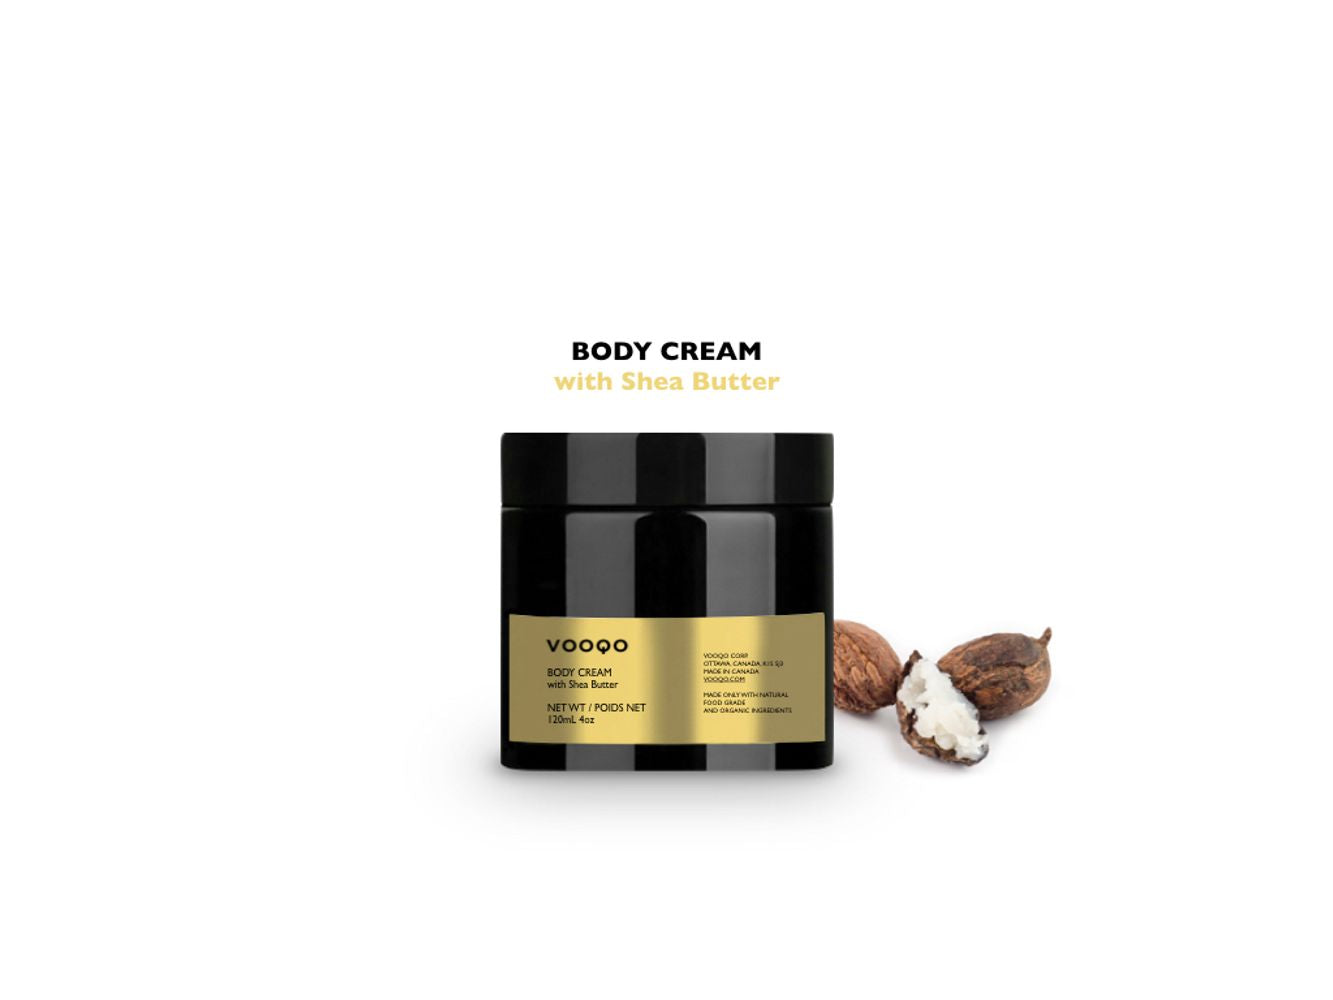 Body Cream with Shea Butter